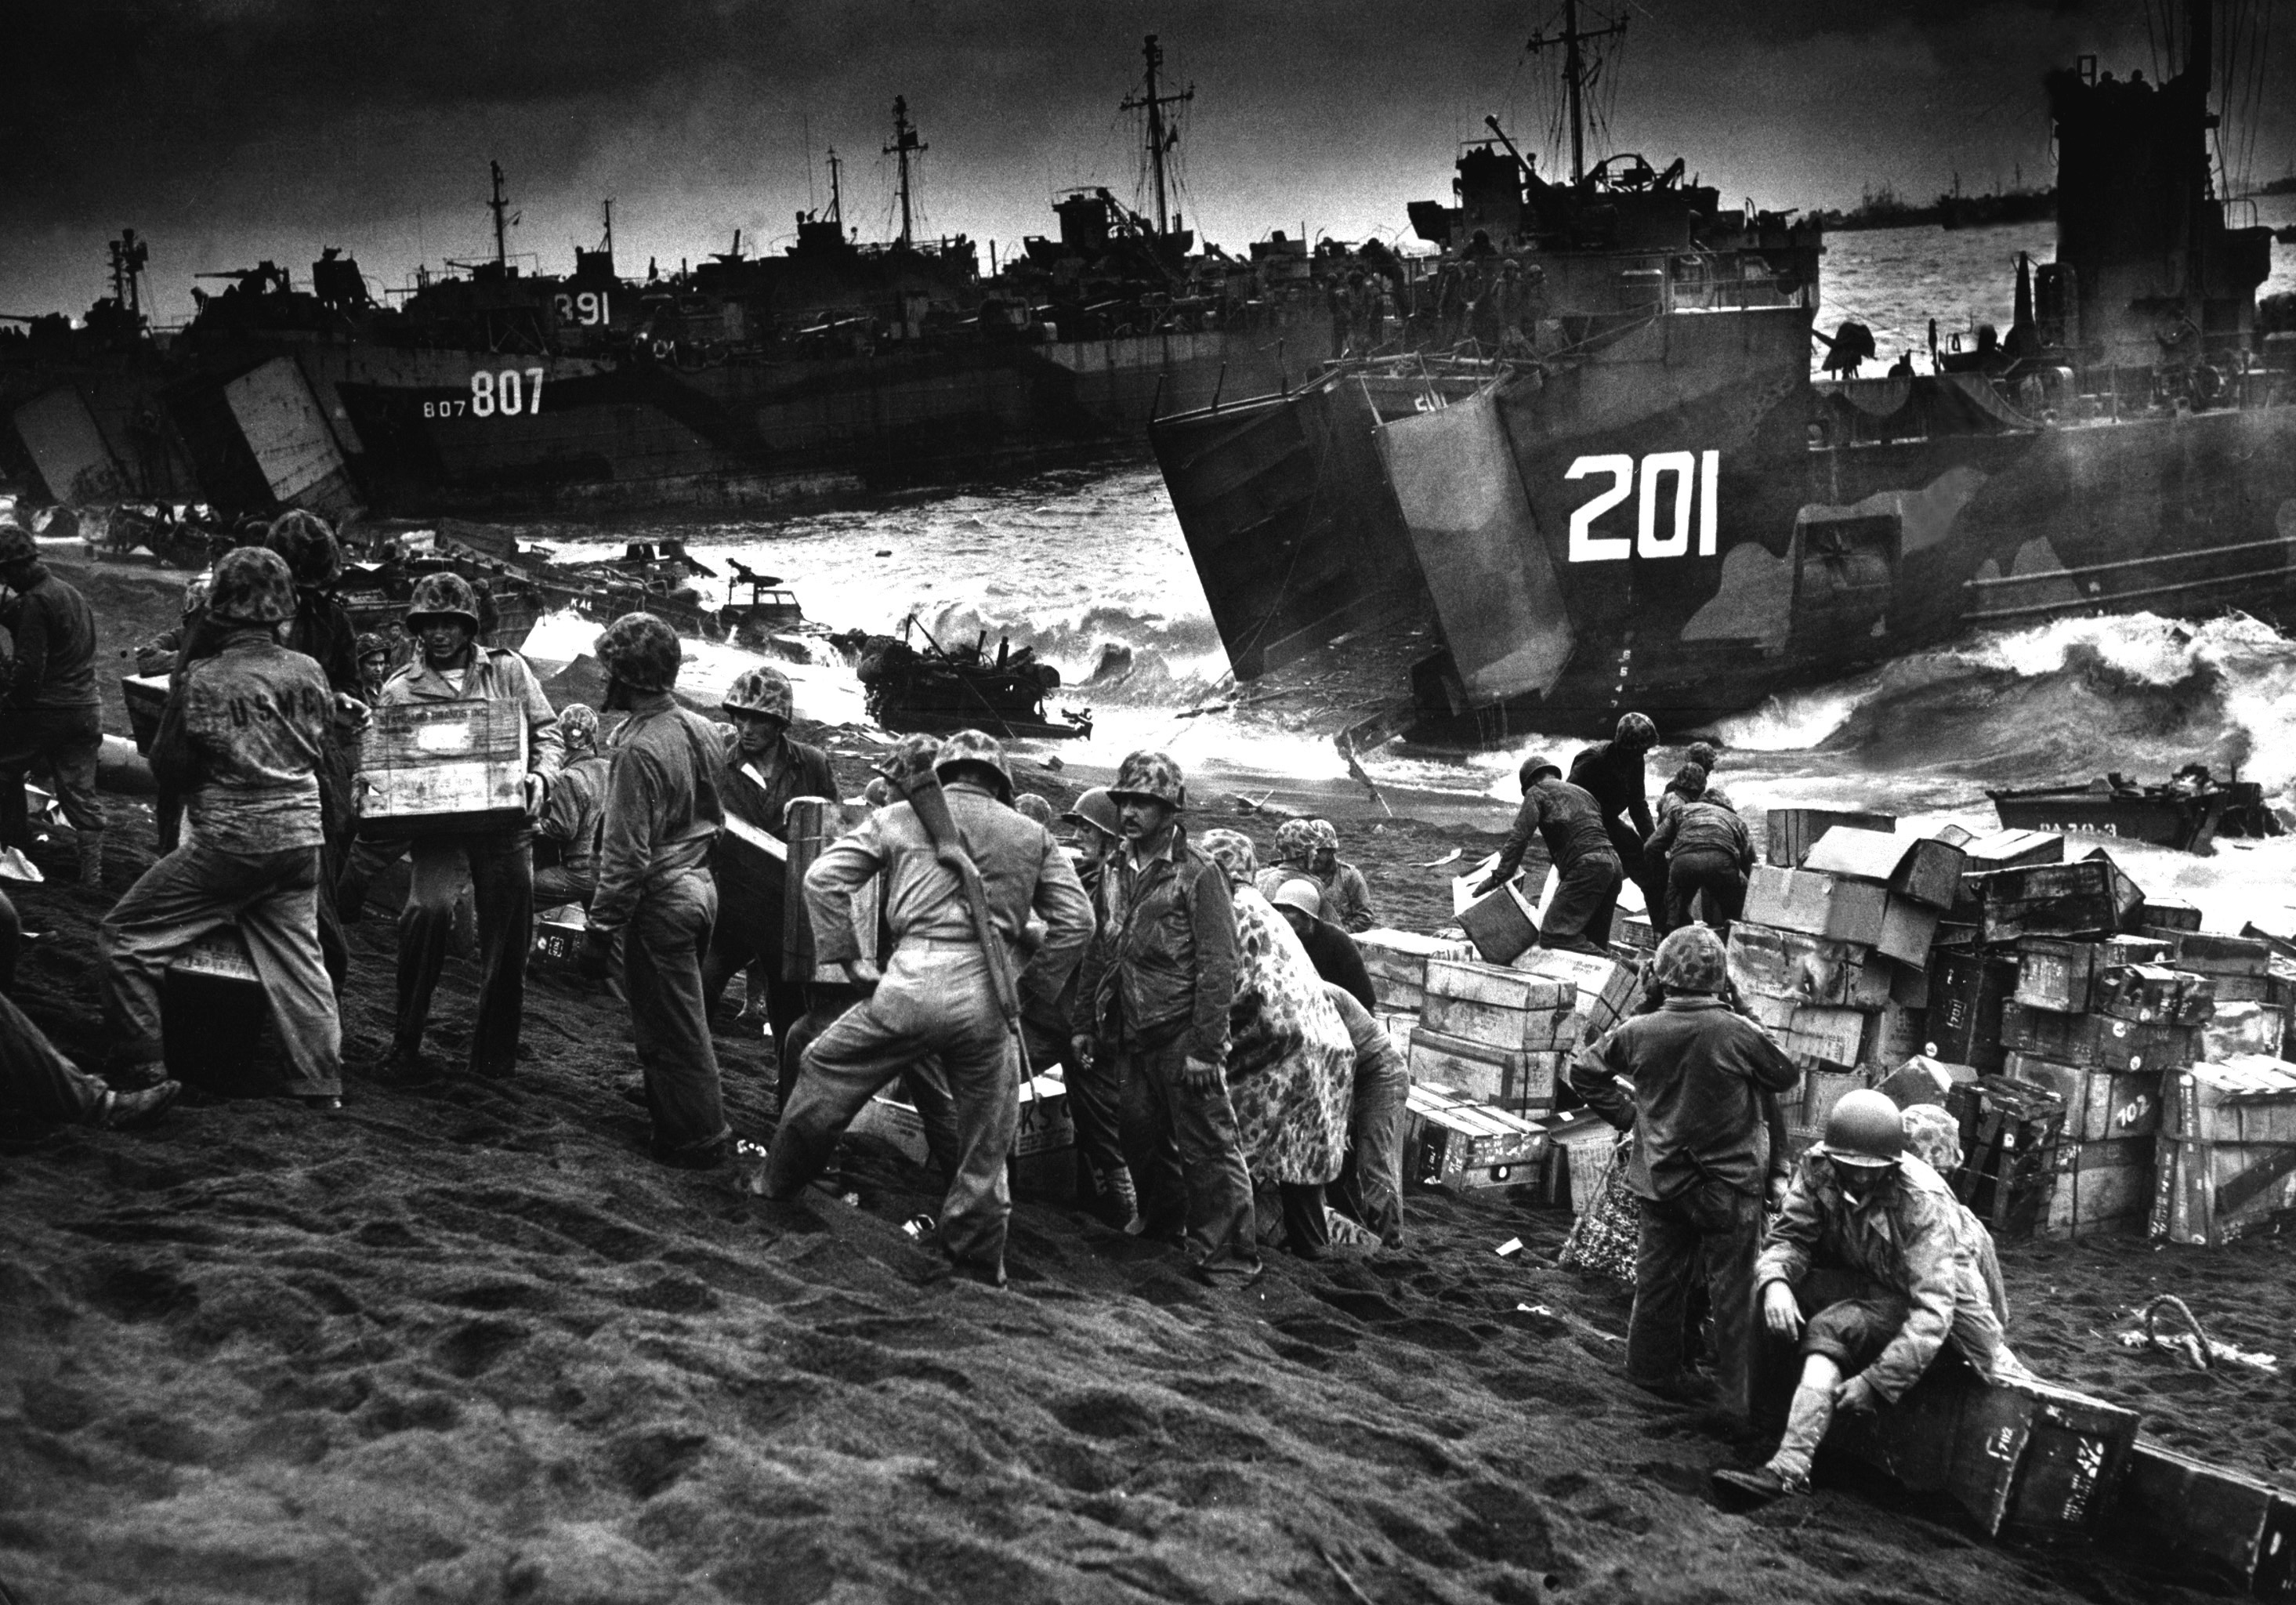 Out of the gaping mouths of Coast Guard and Navy Landing Craft, rose the great flow of invasion supplies to the blackened sands of Iwo Jima, a few hours after the Marines had wrested their foothold on the vital island.